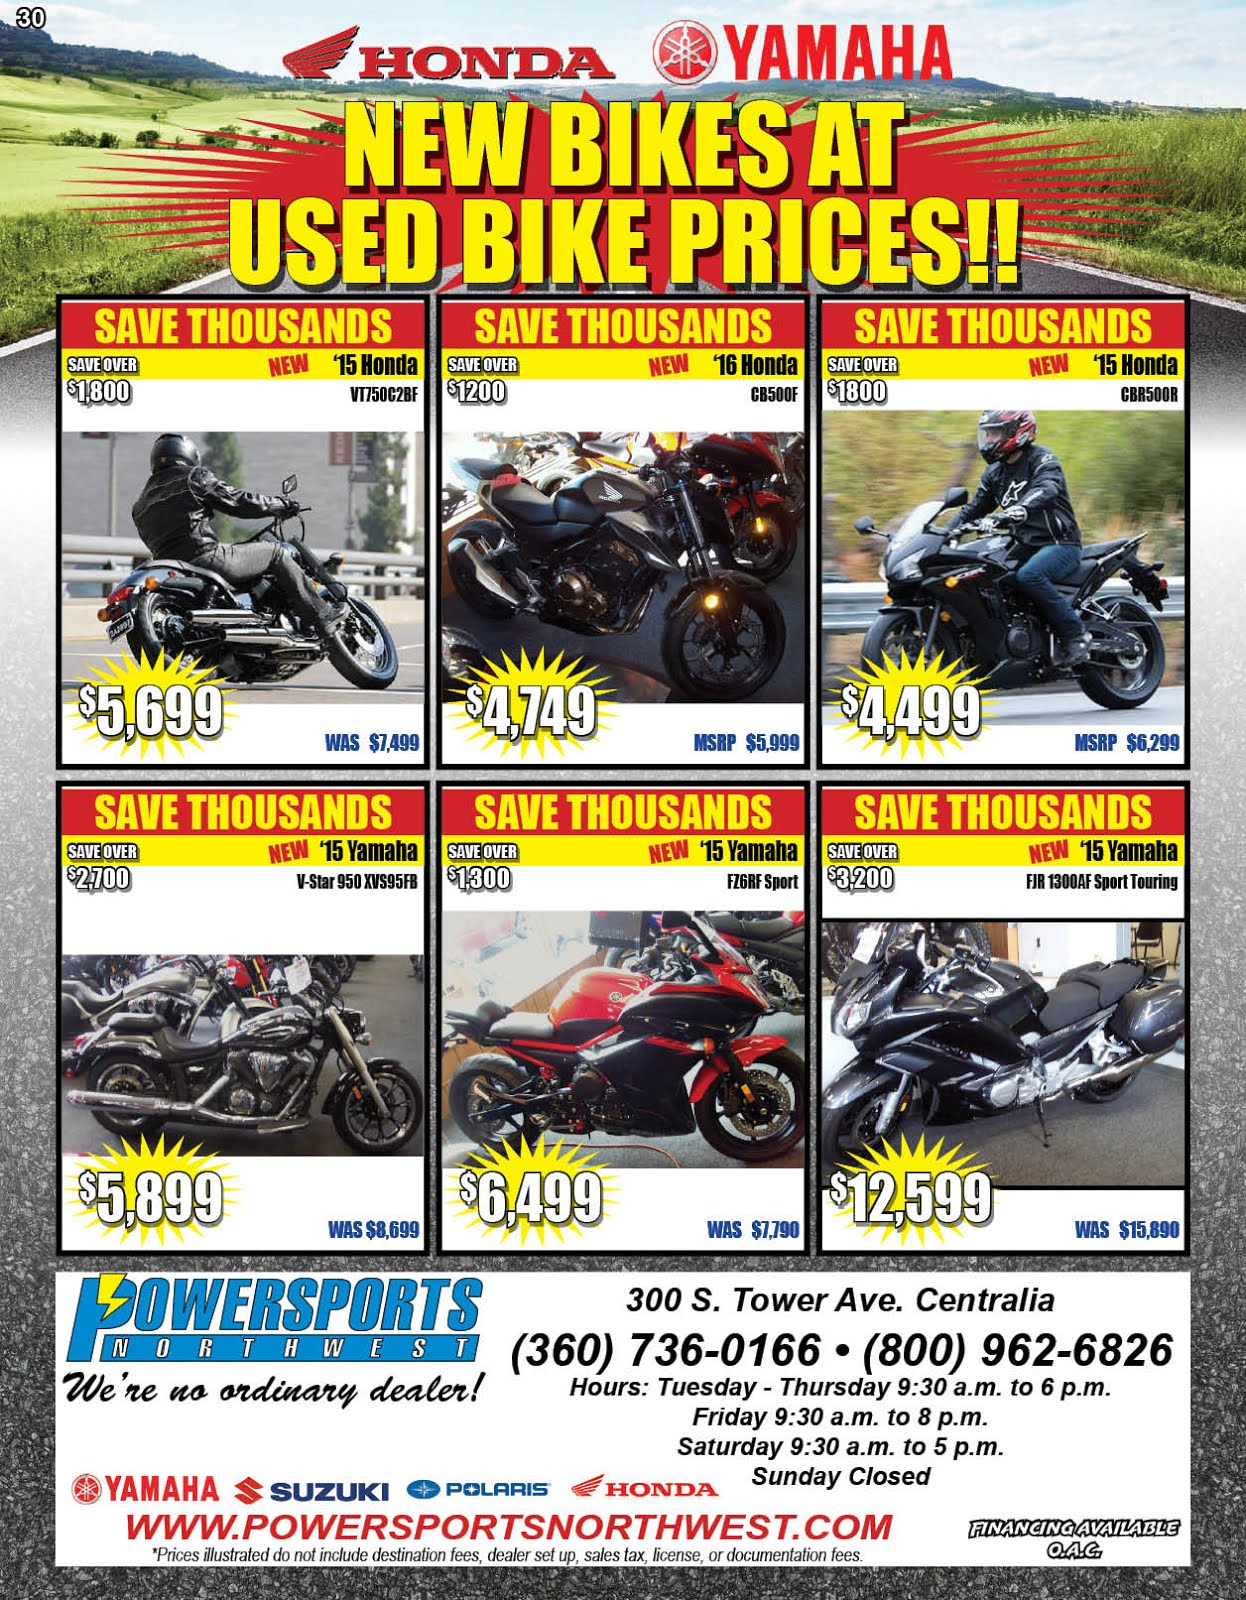 Powersports Northwest New Bikes @ Used Bike Prices!!